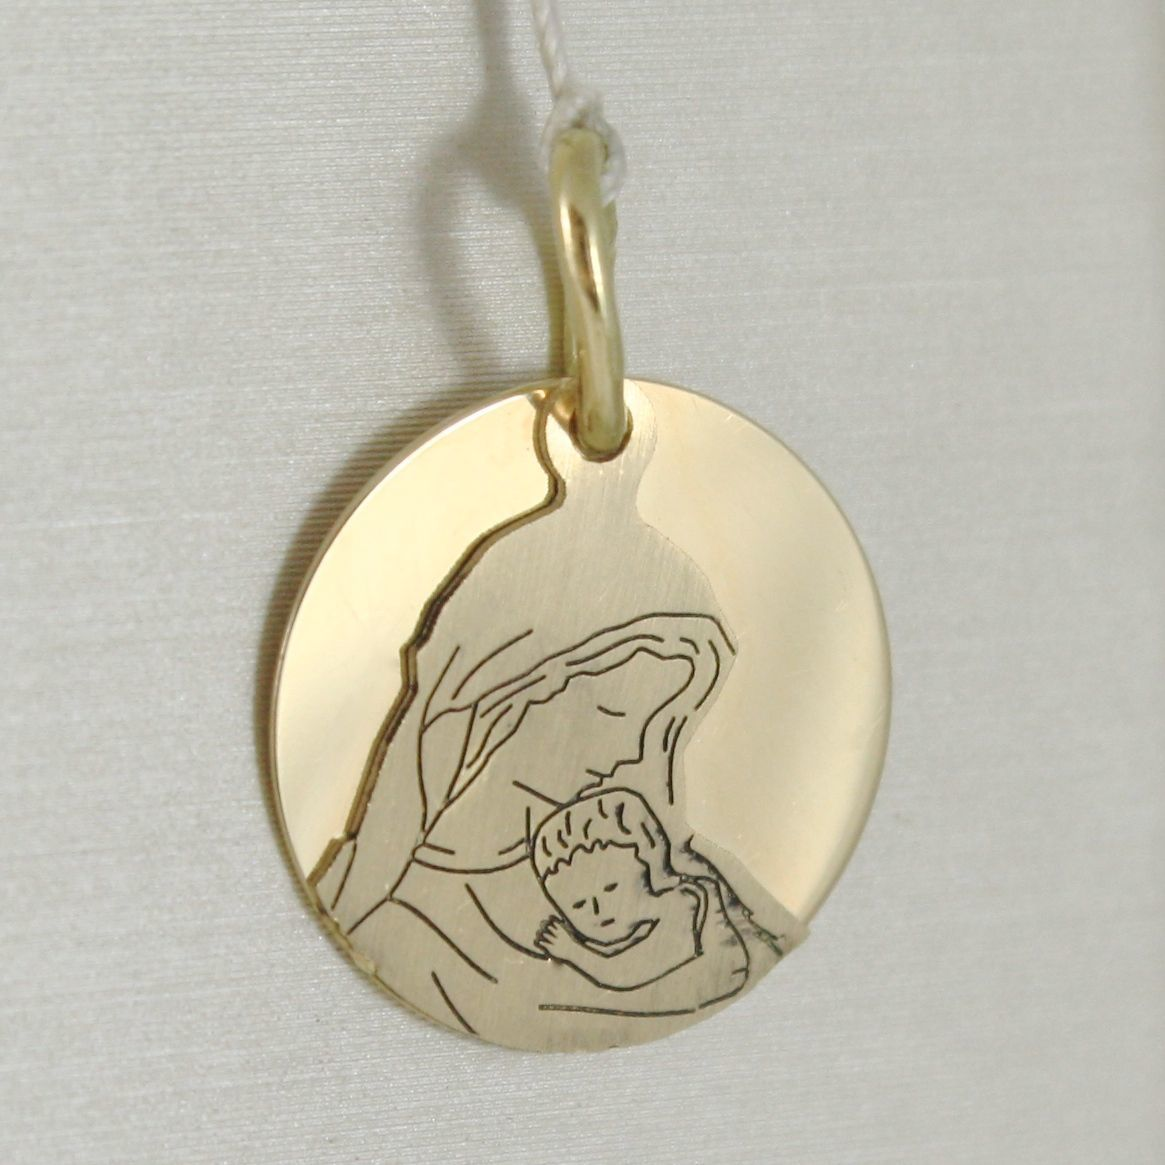 Pendant Medal Round 750 18k Yellow Gold, Mary and Jesus, Double Layer, Satin